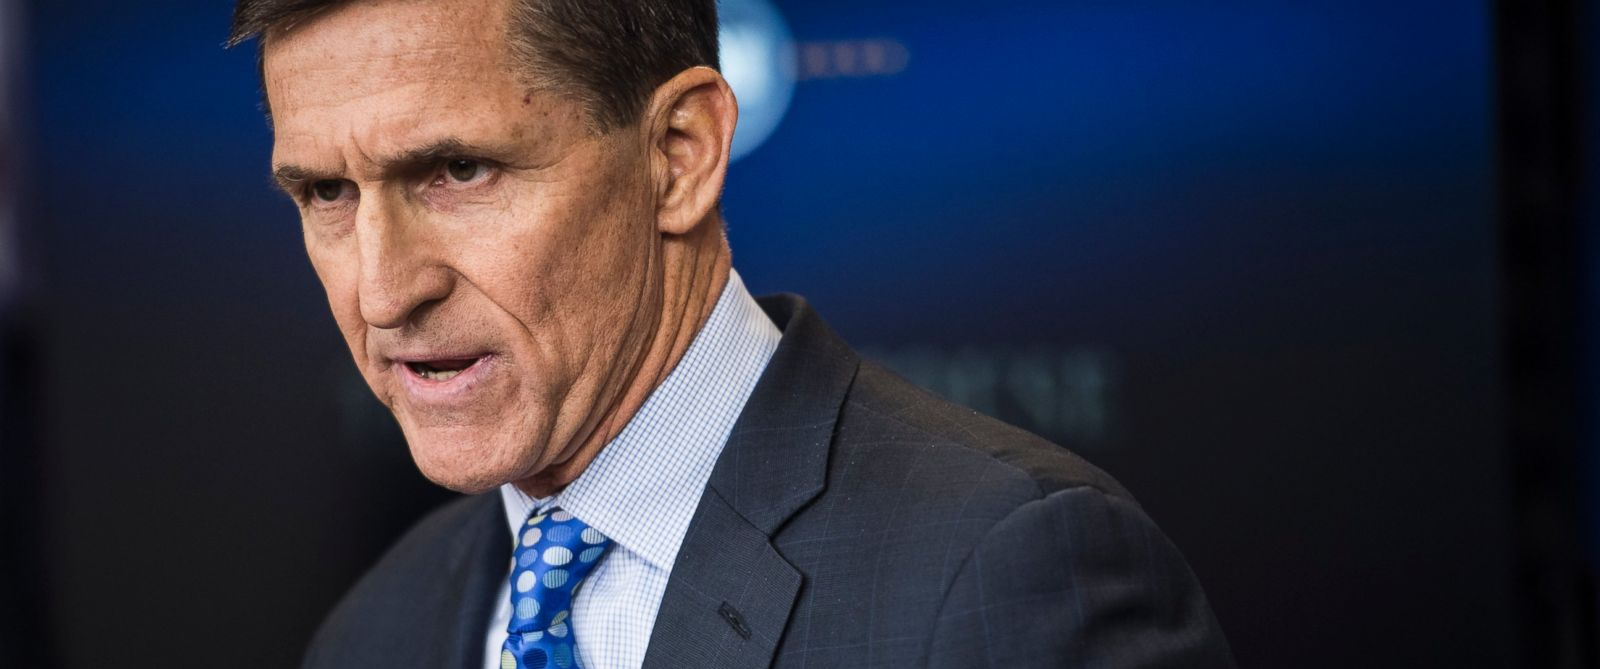 Opinion: Why The Leaks In The Michael Flynn Issue Should Concern And Enrage All Of Us